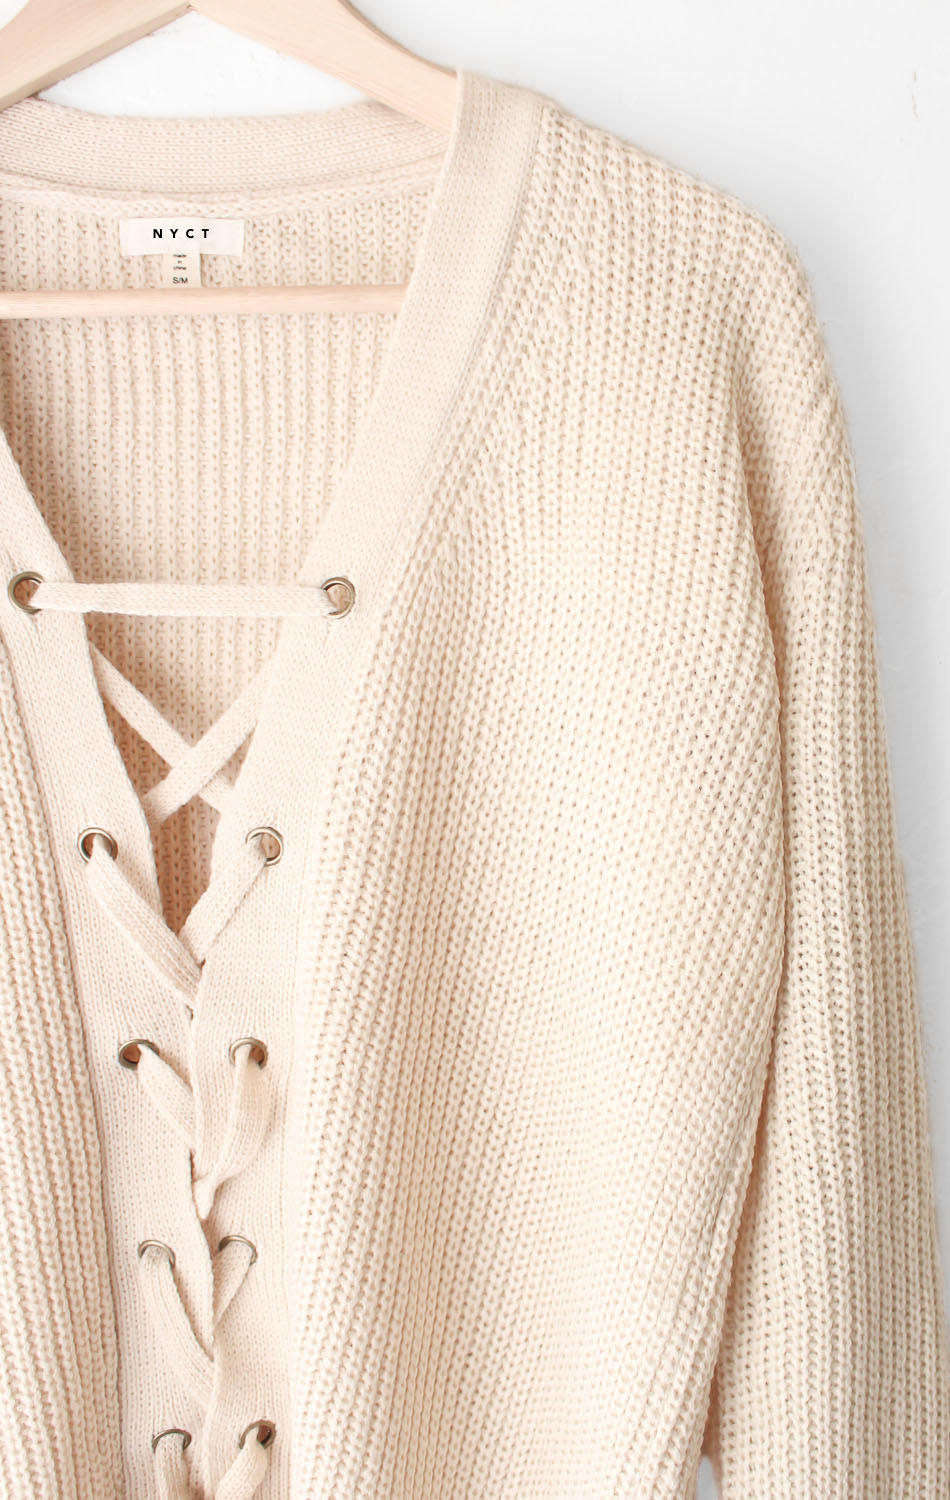 Oversized Lace Up Knit Sweater - Cream from NYCT Clothing  d9b3ef673